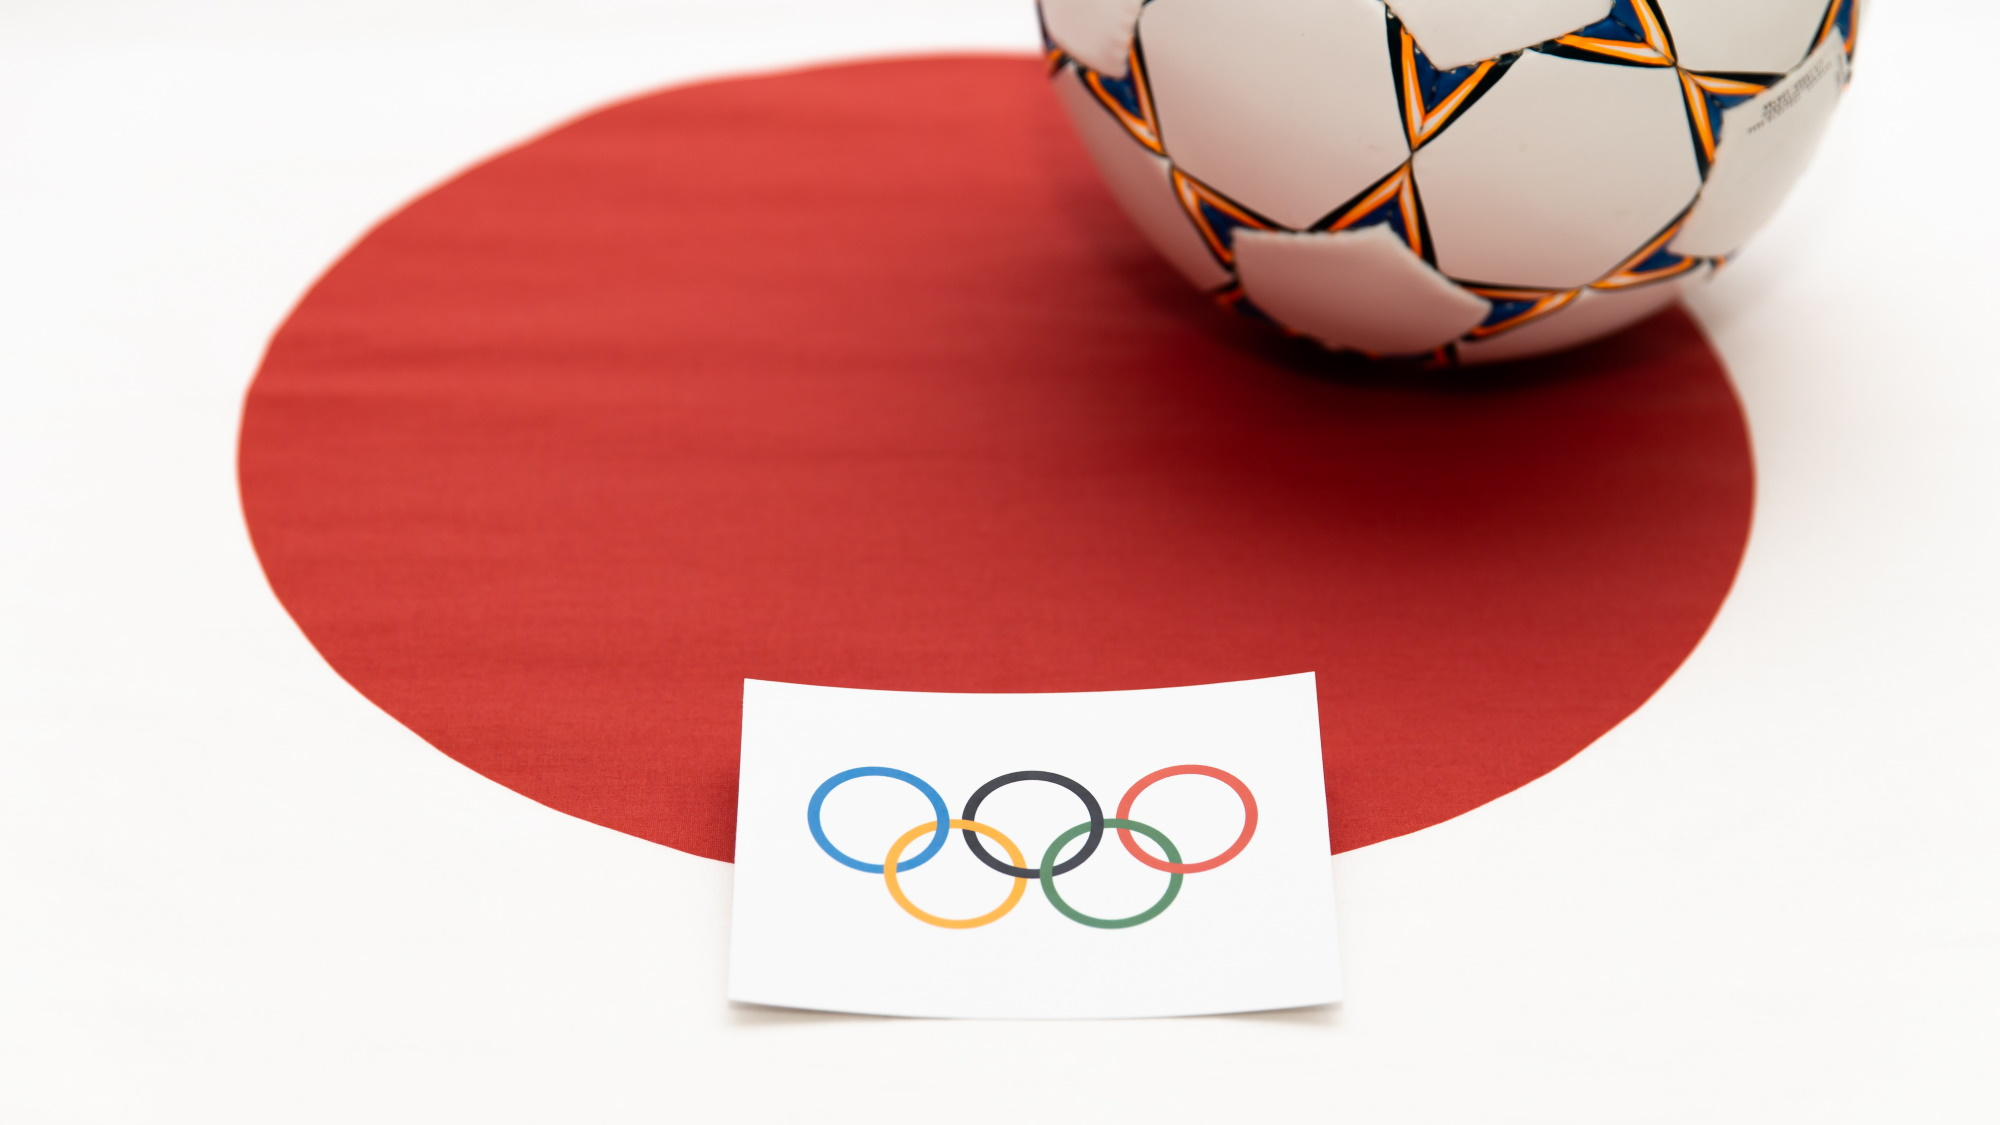 Football/soccer at the 2020 Tokyo Olympics in Japan